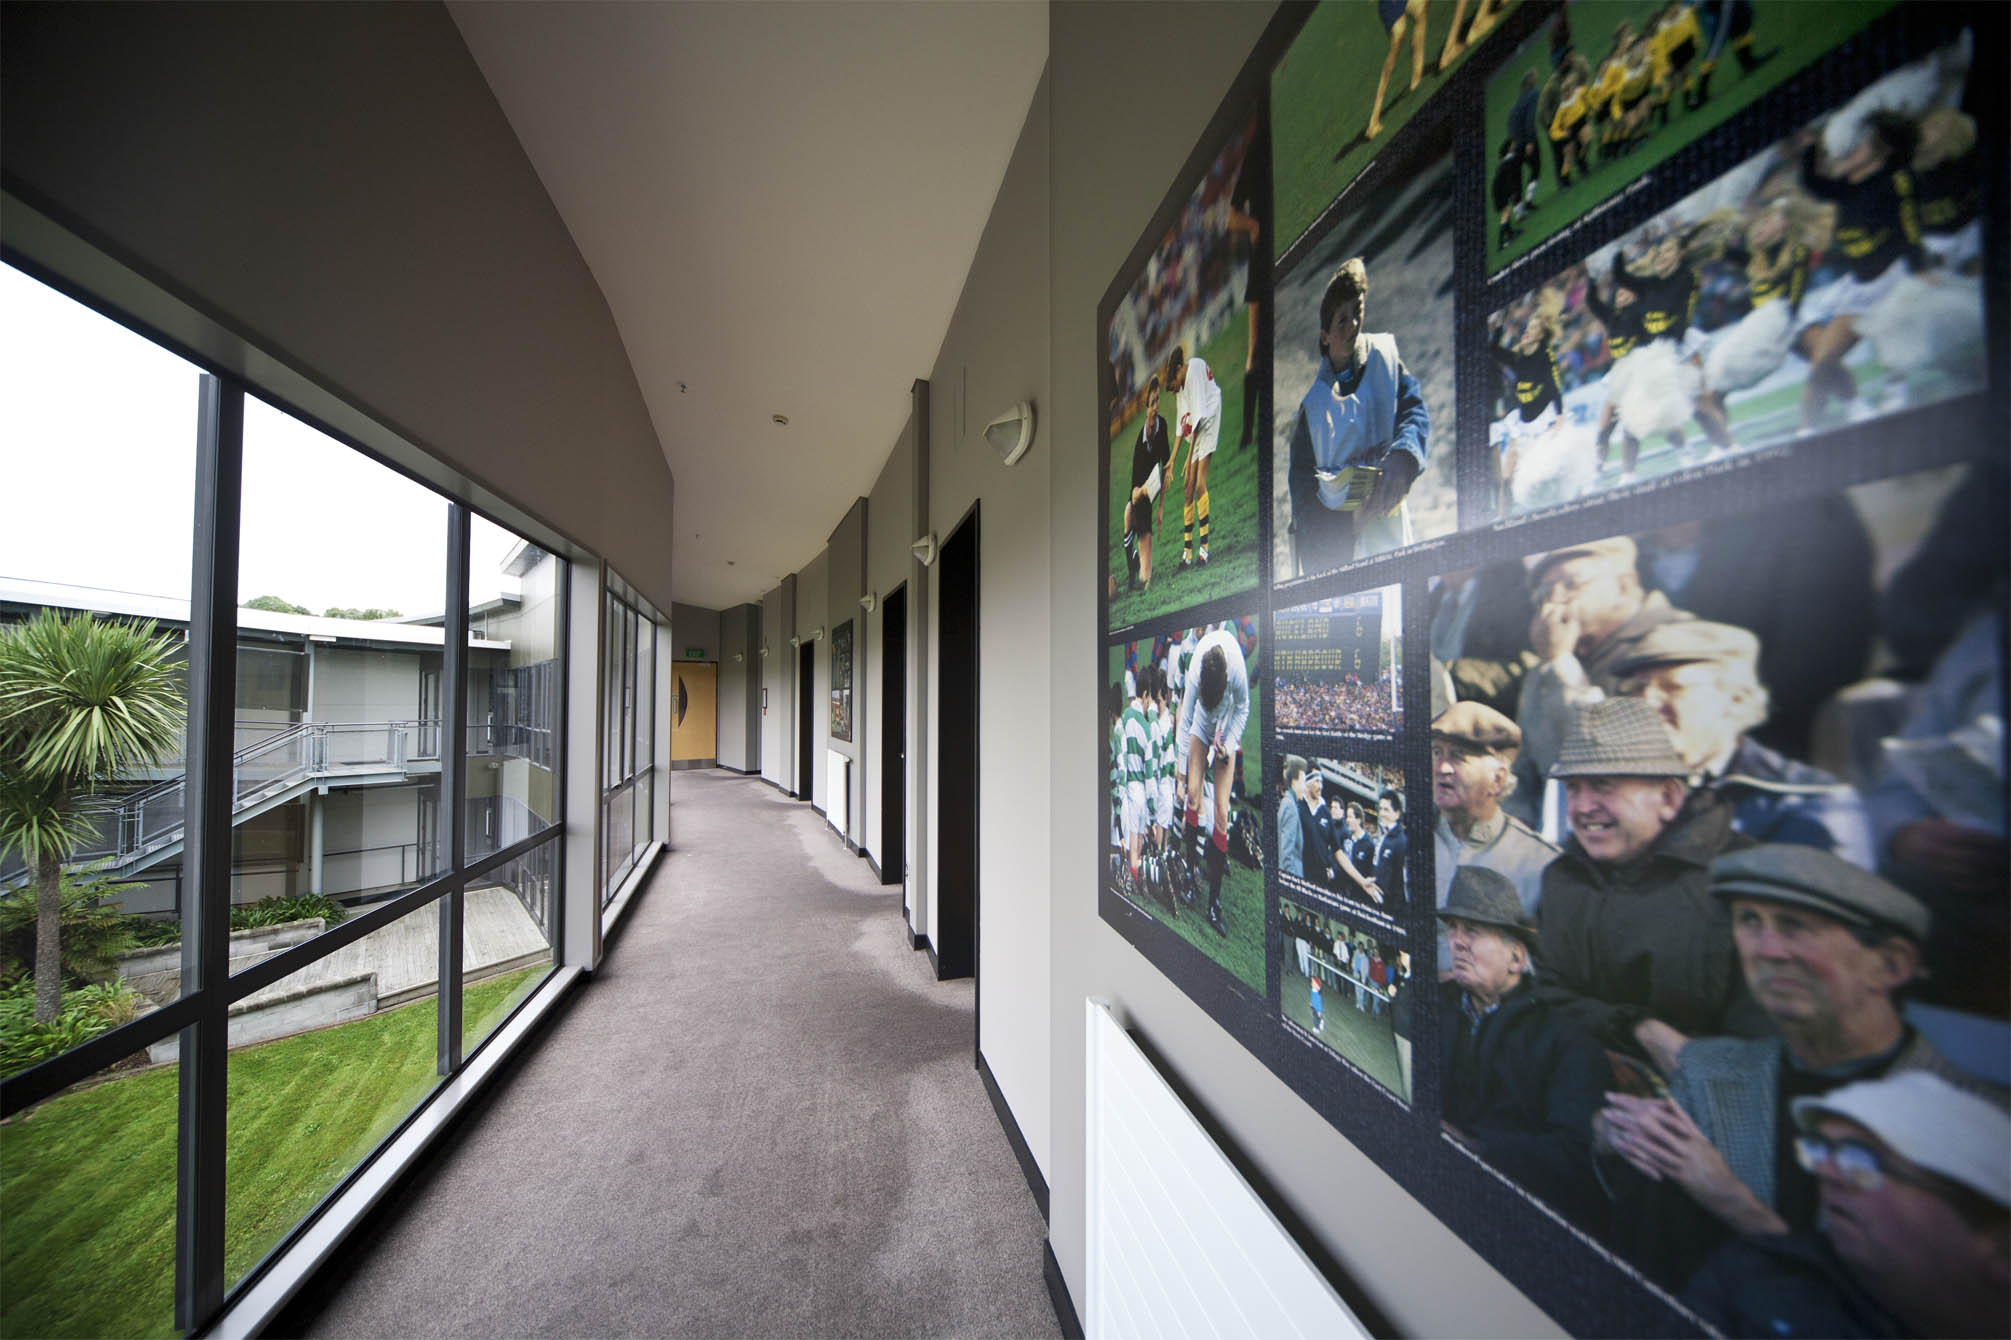 Sport & Rugby Institute Accommodation Block hallways